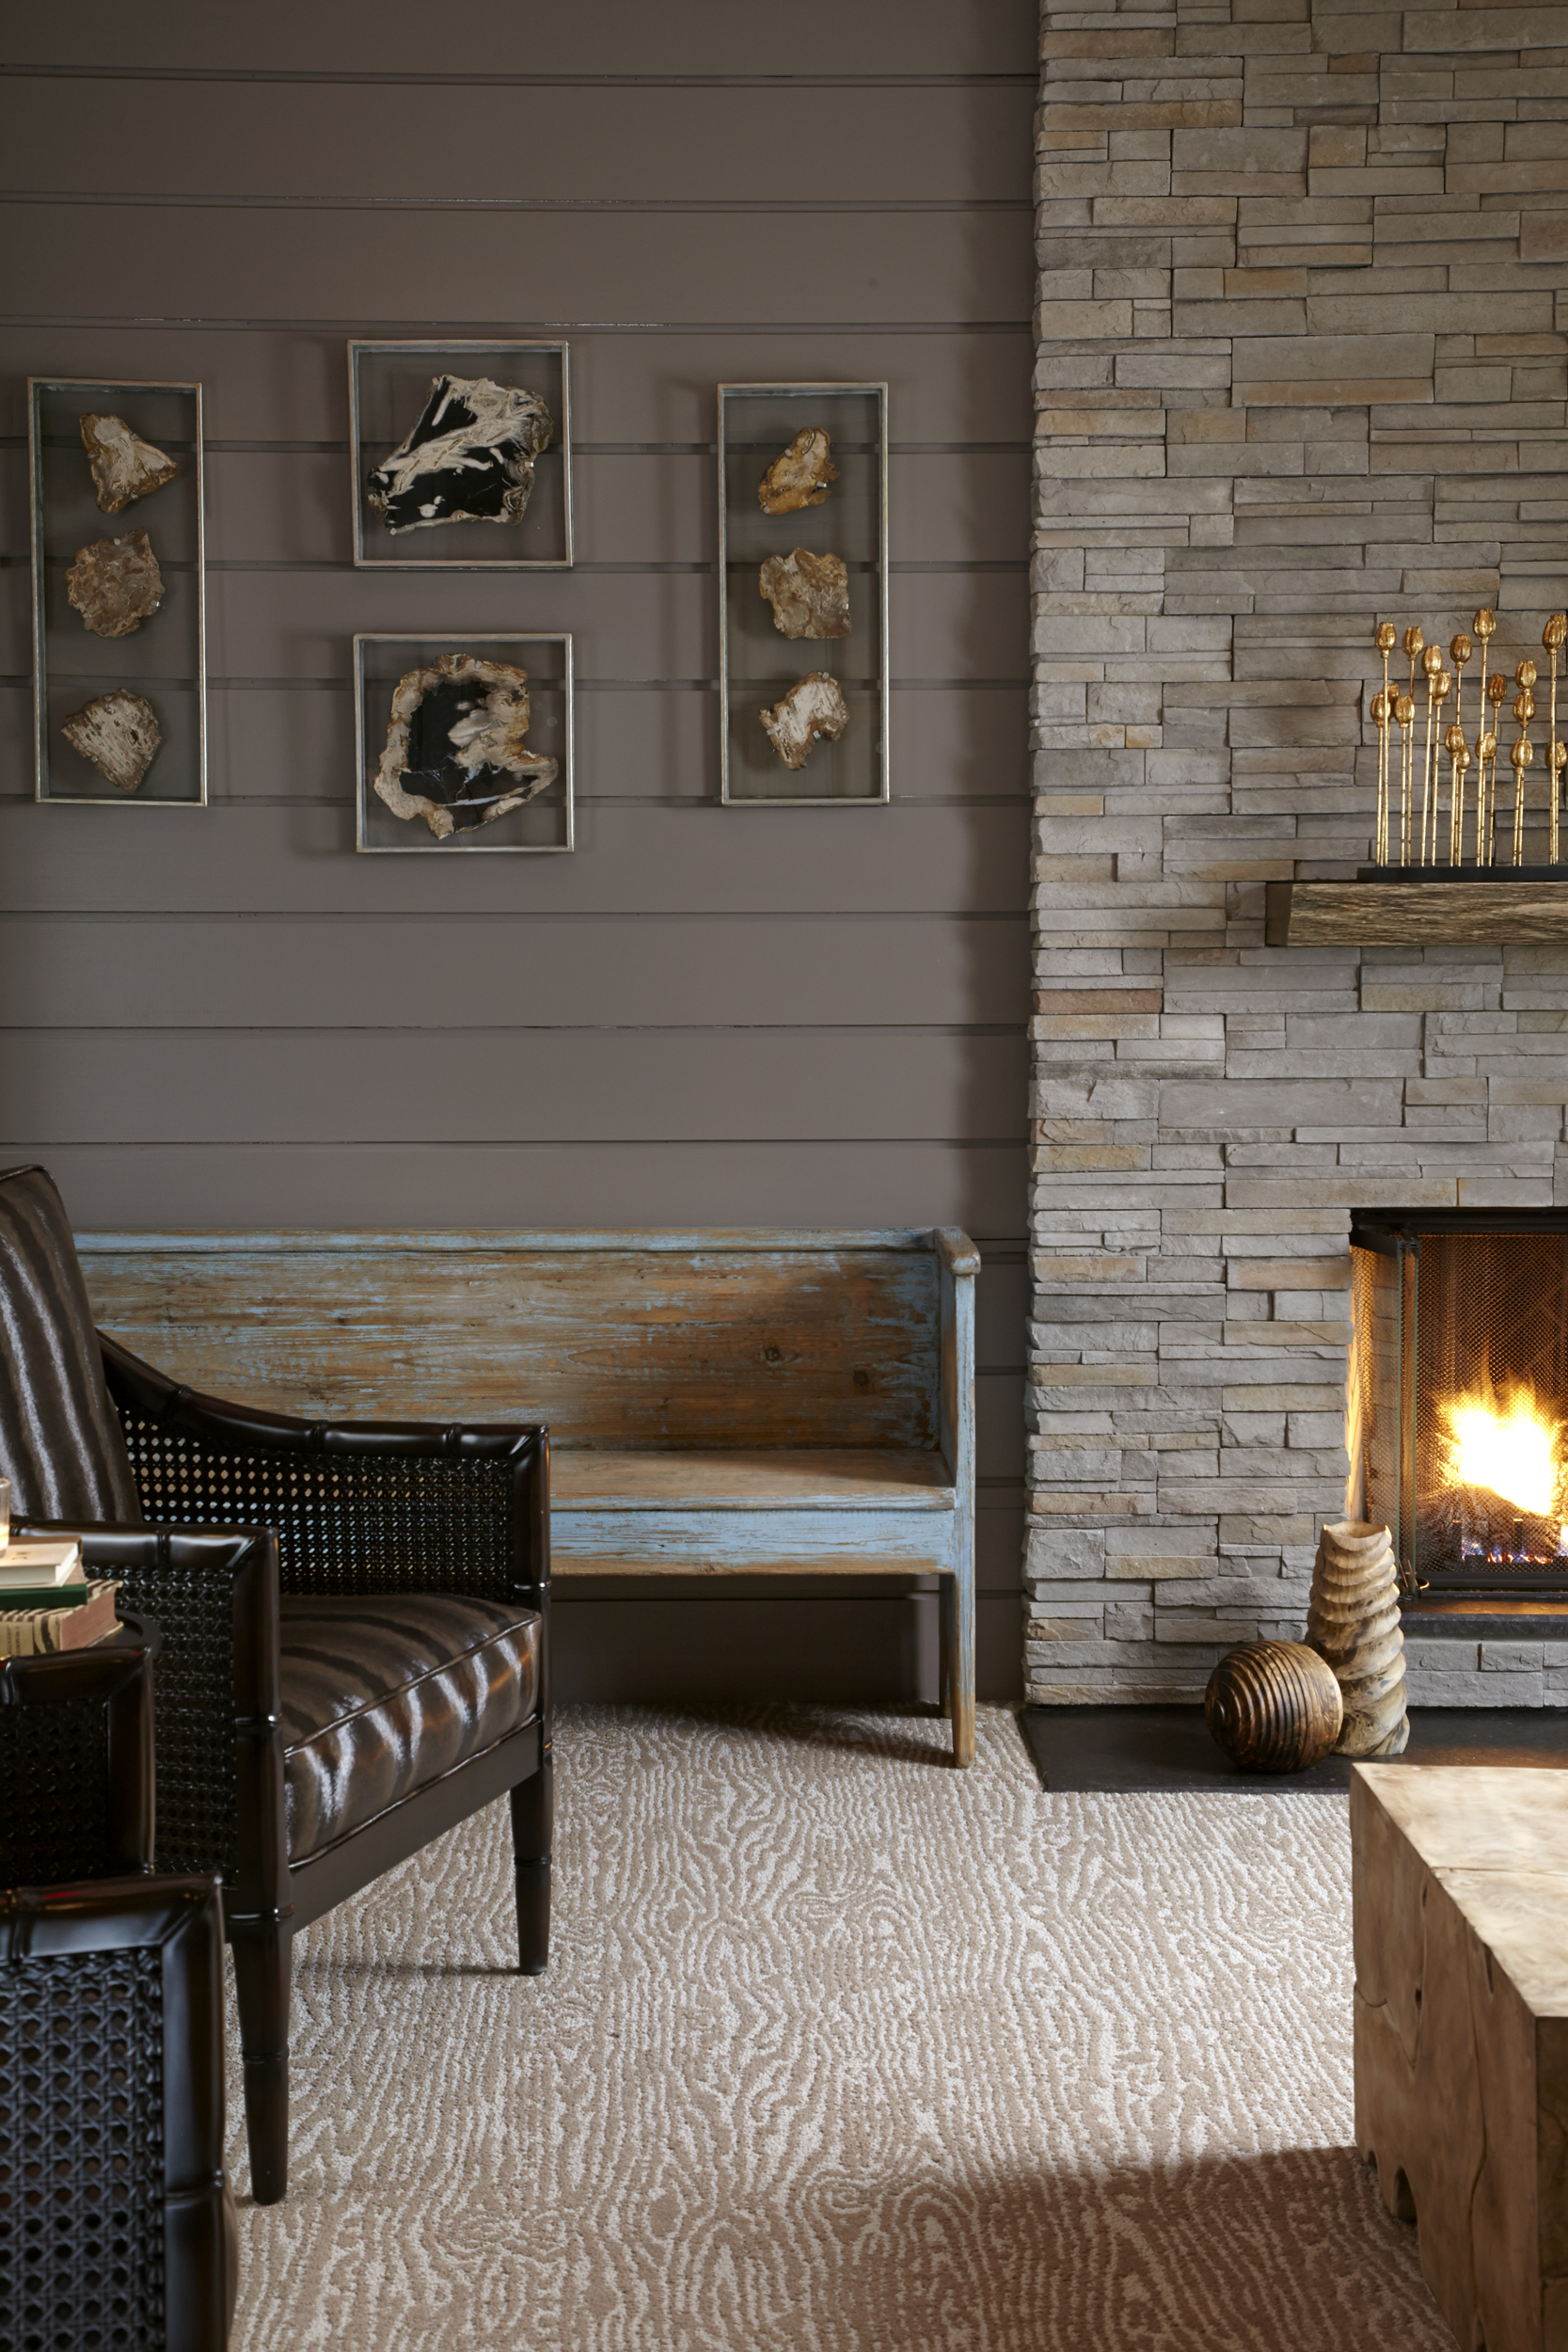 THE LODGE AT WOODLOCH -